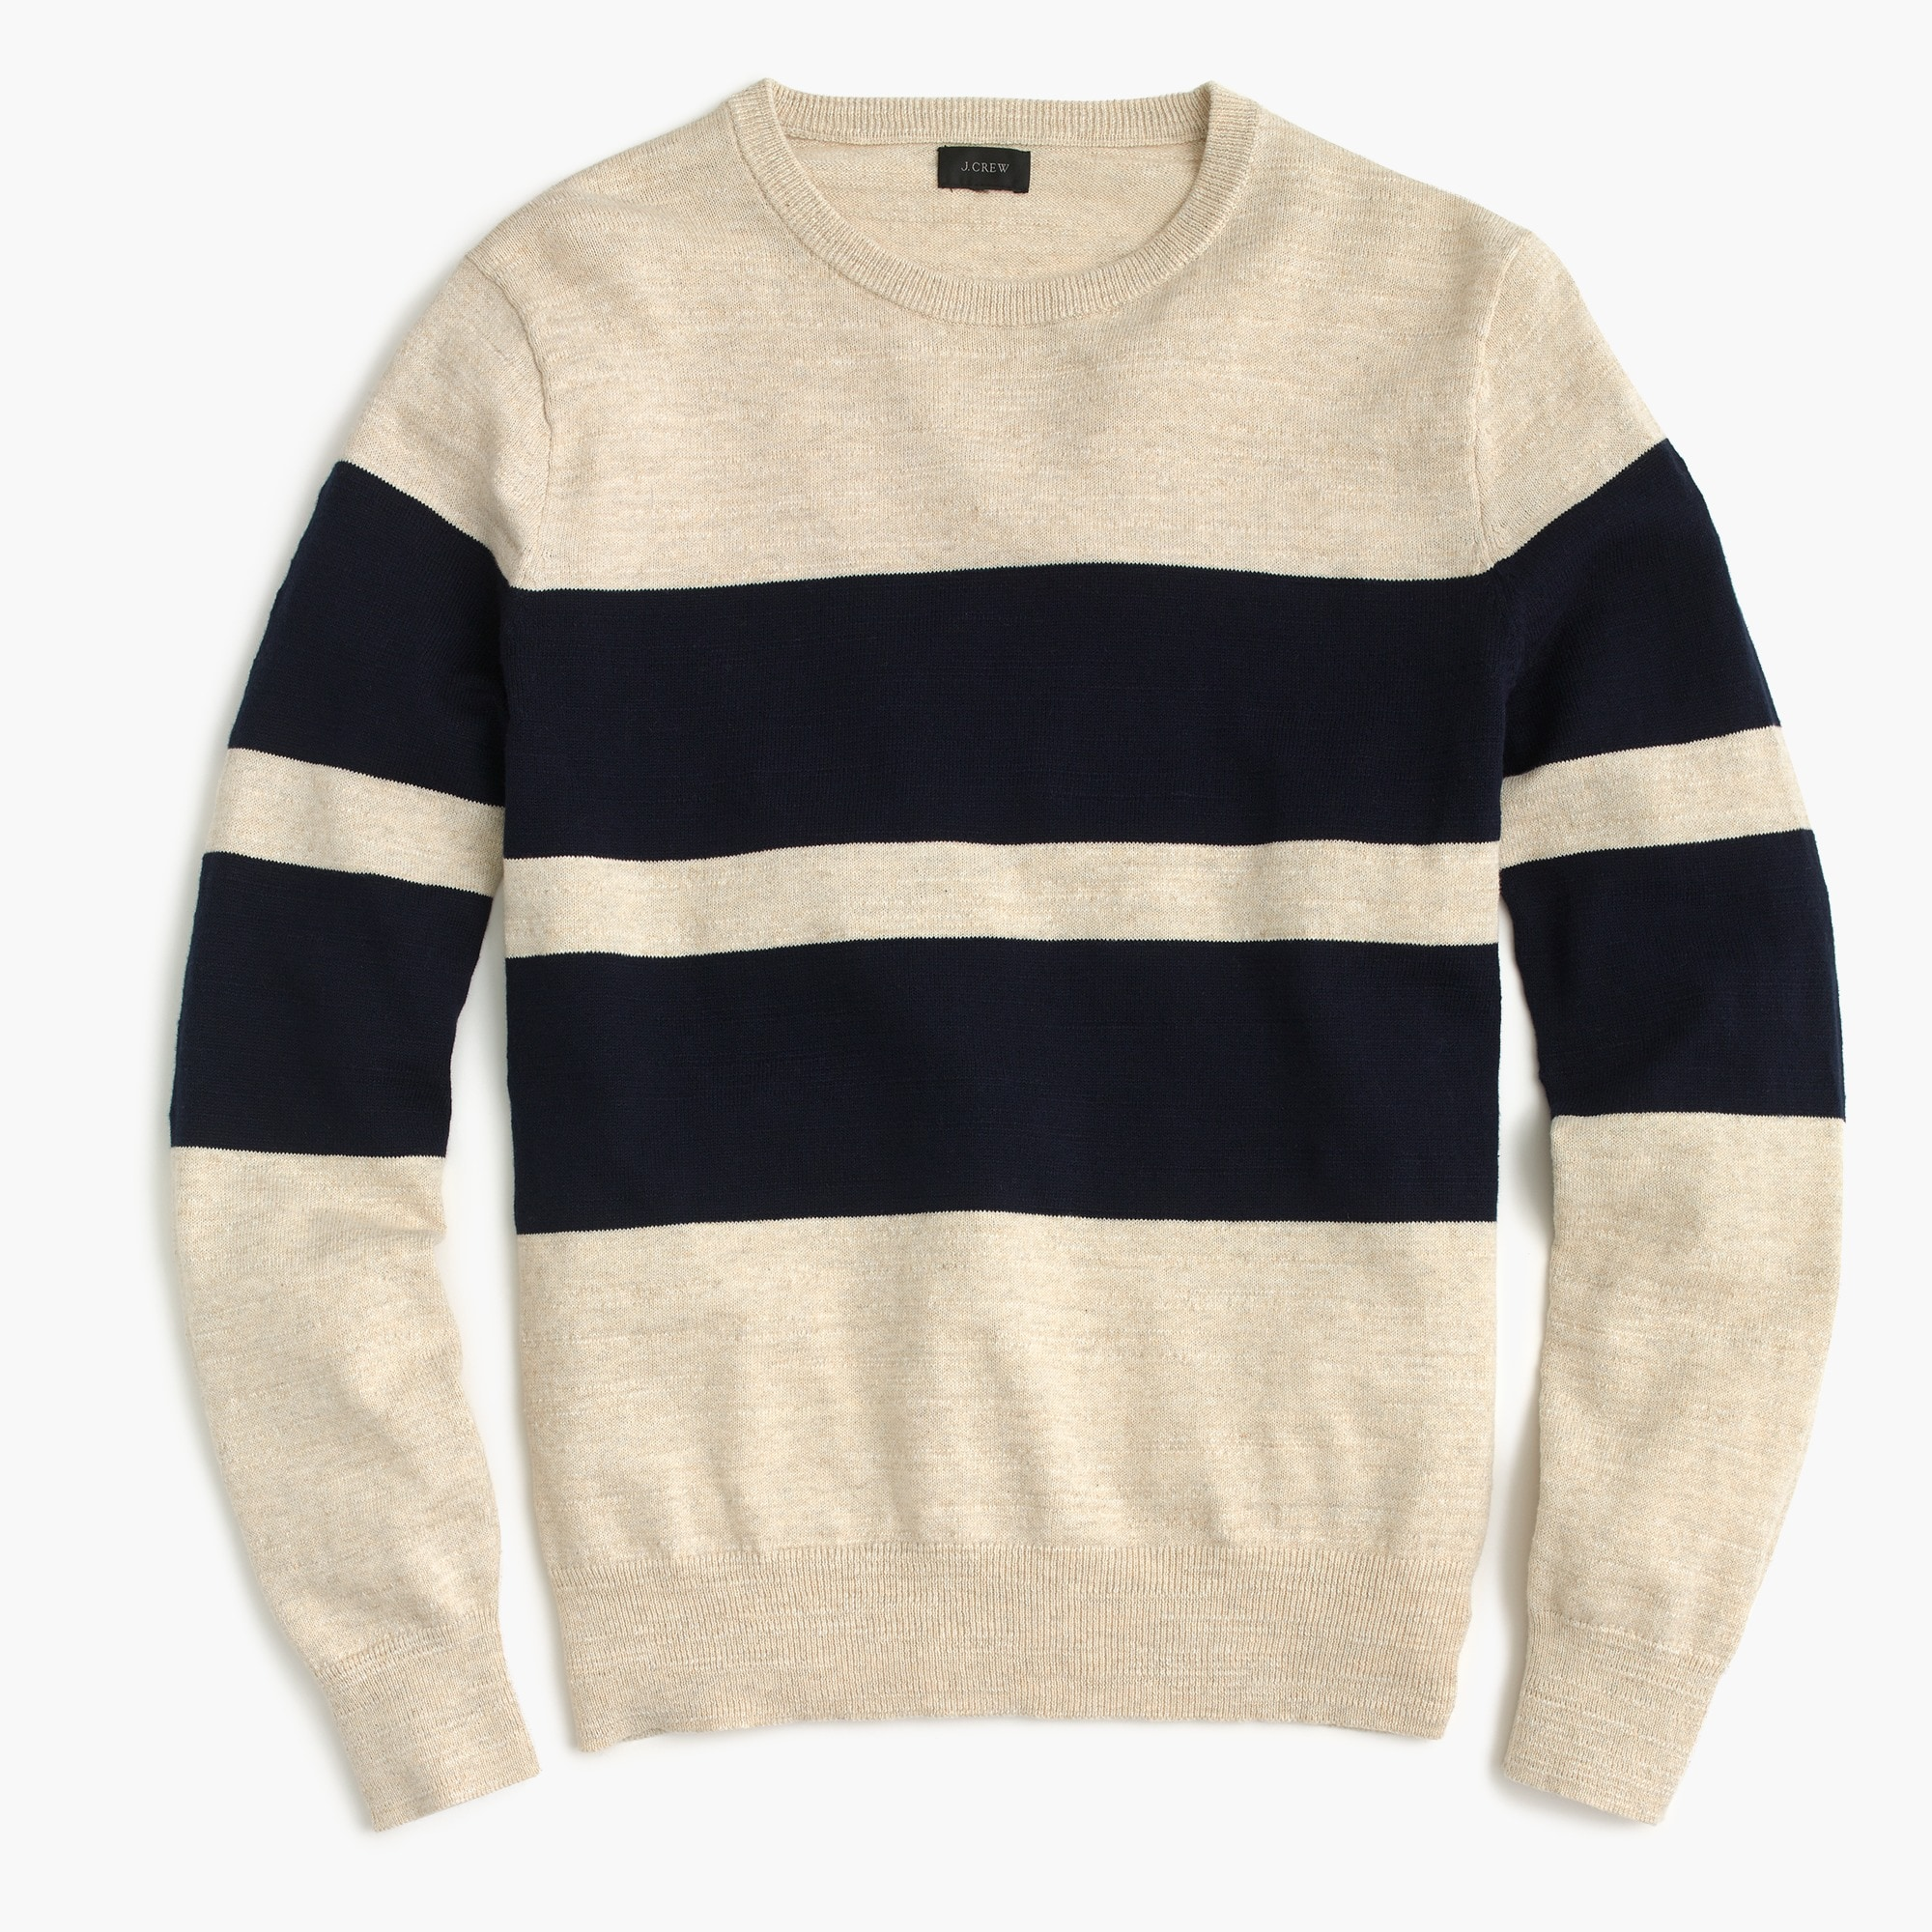 Slim rugged cotton crewneck sweater in bold stripe